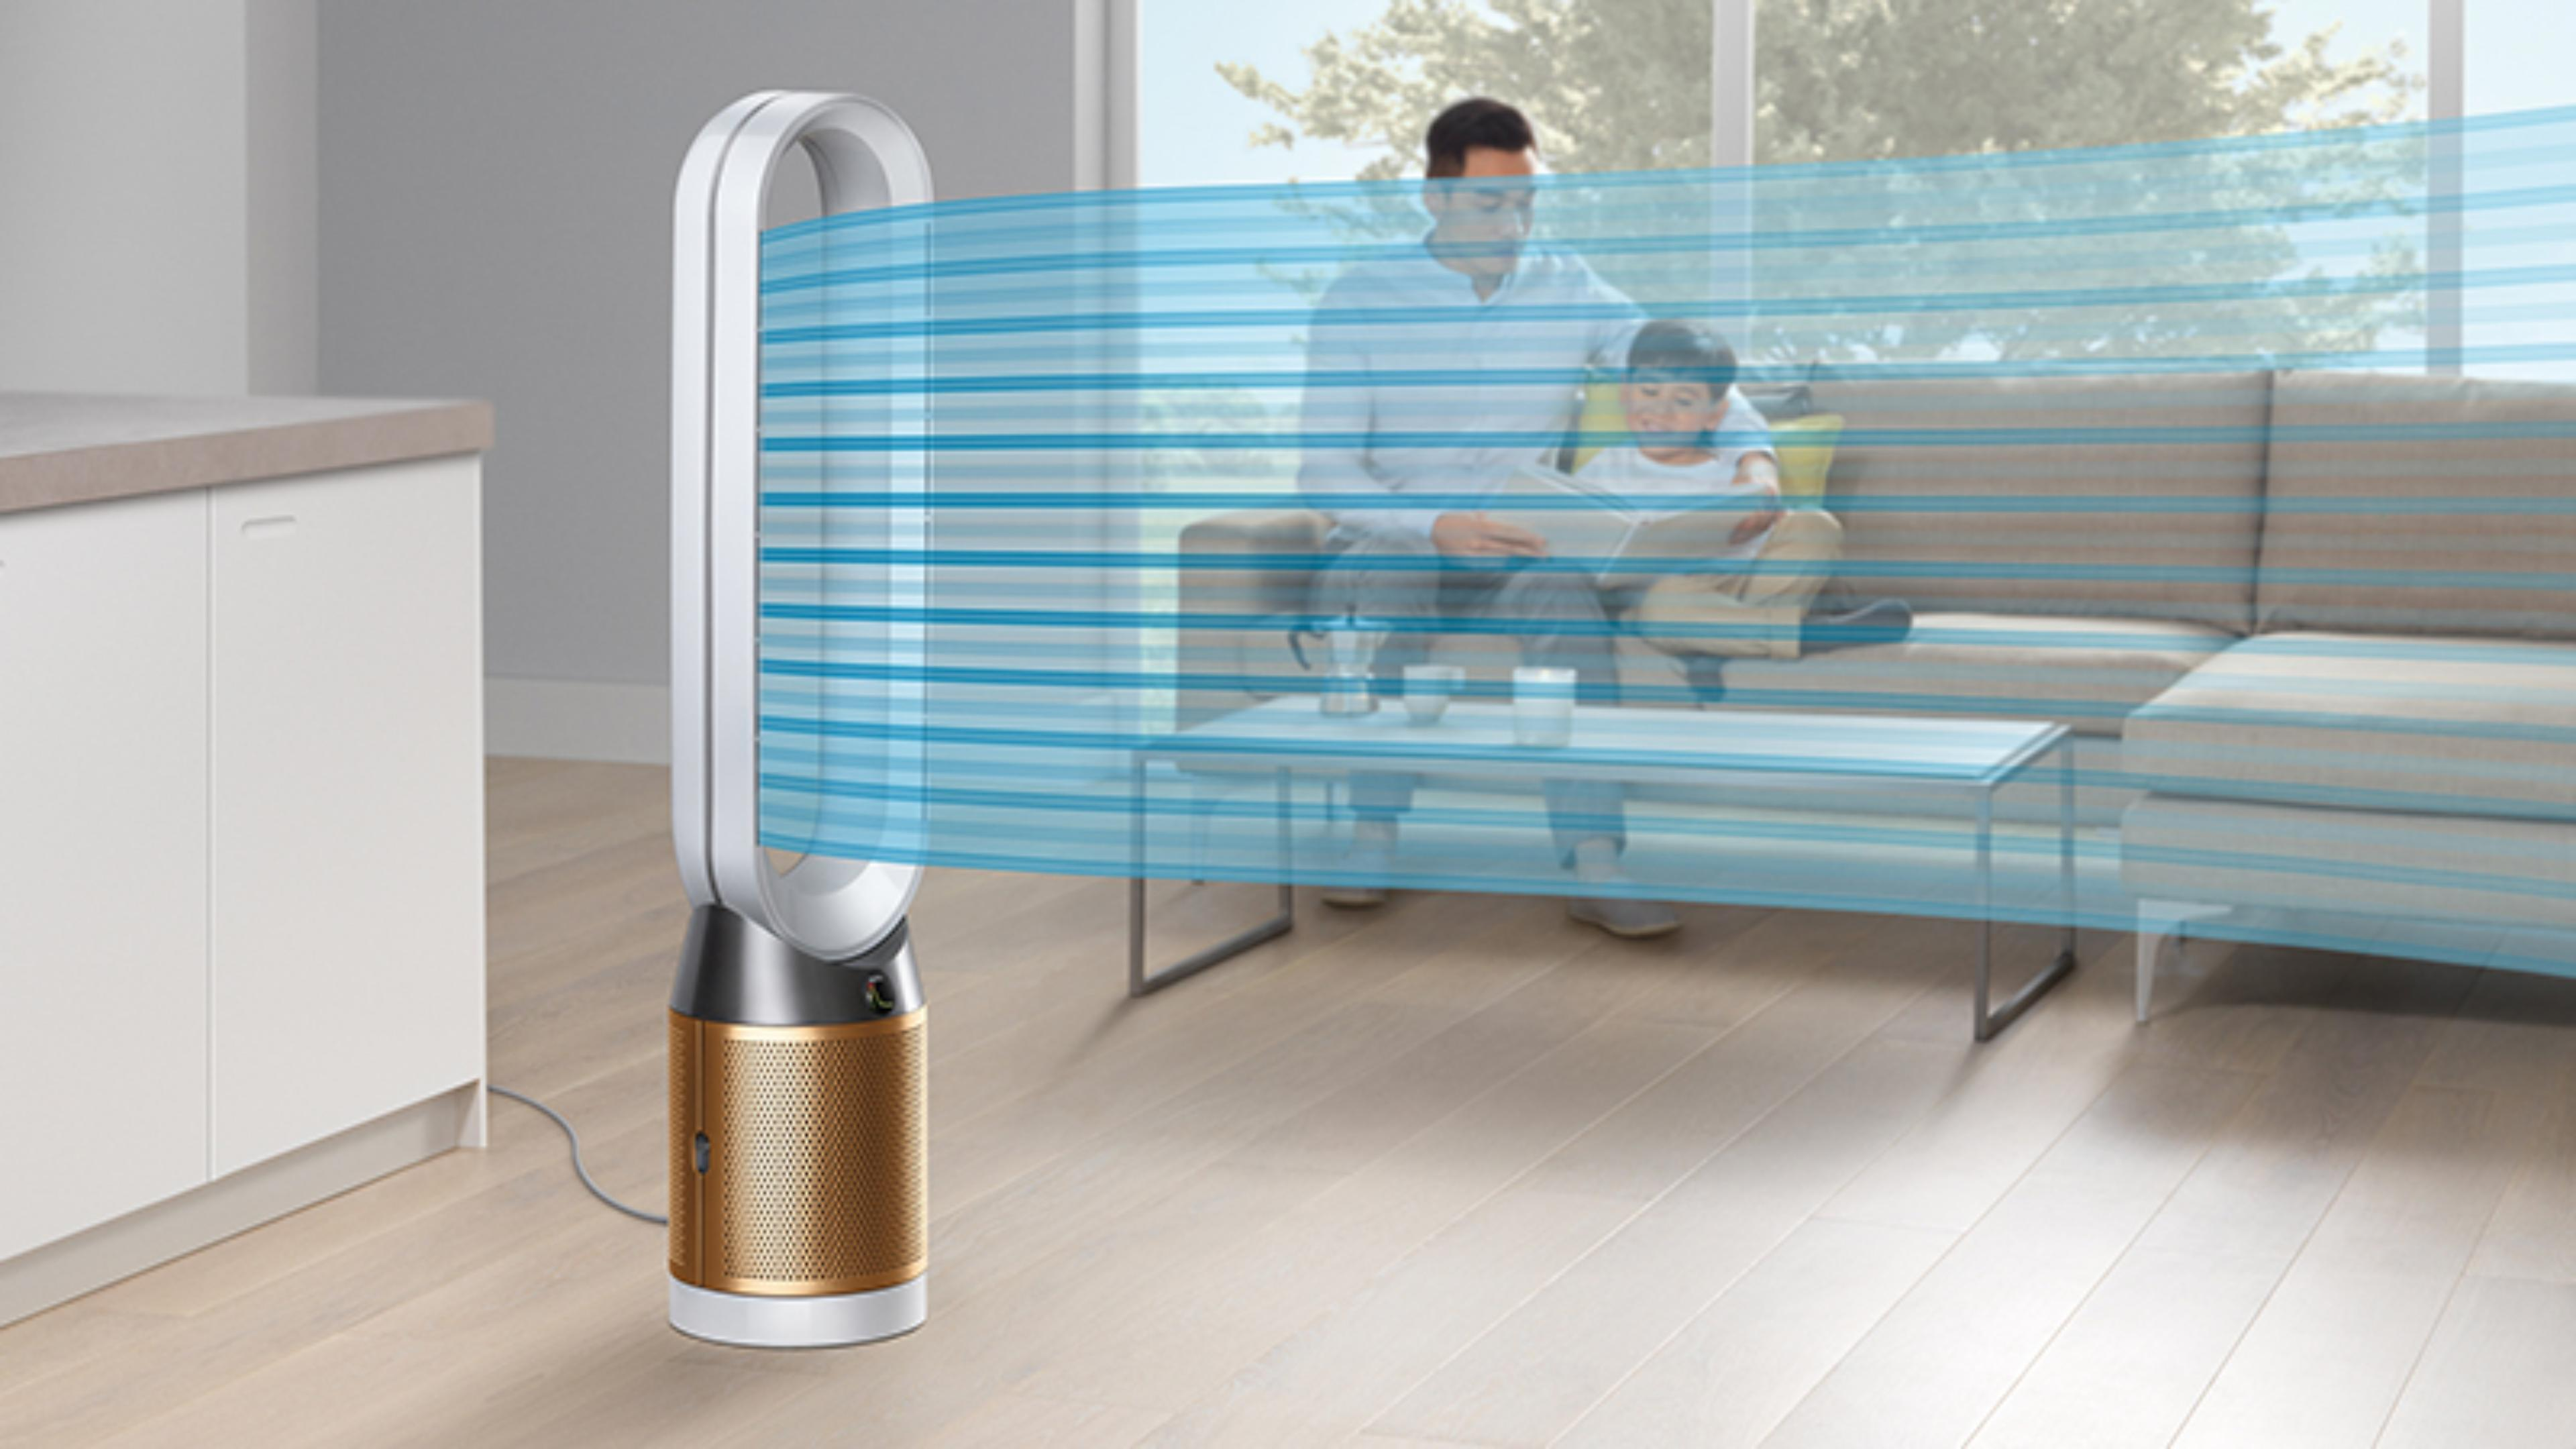 A Dyson Pure Cryptomic purifier projecting a cooling stream of air